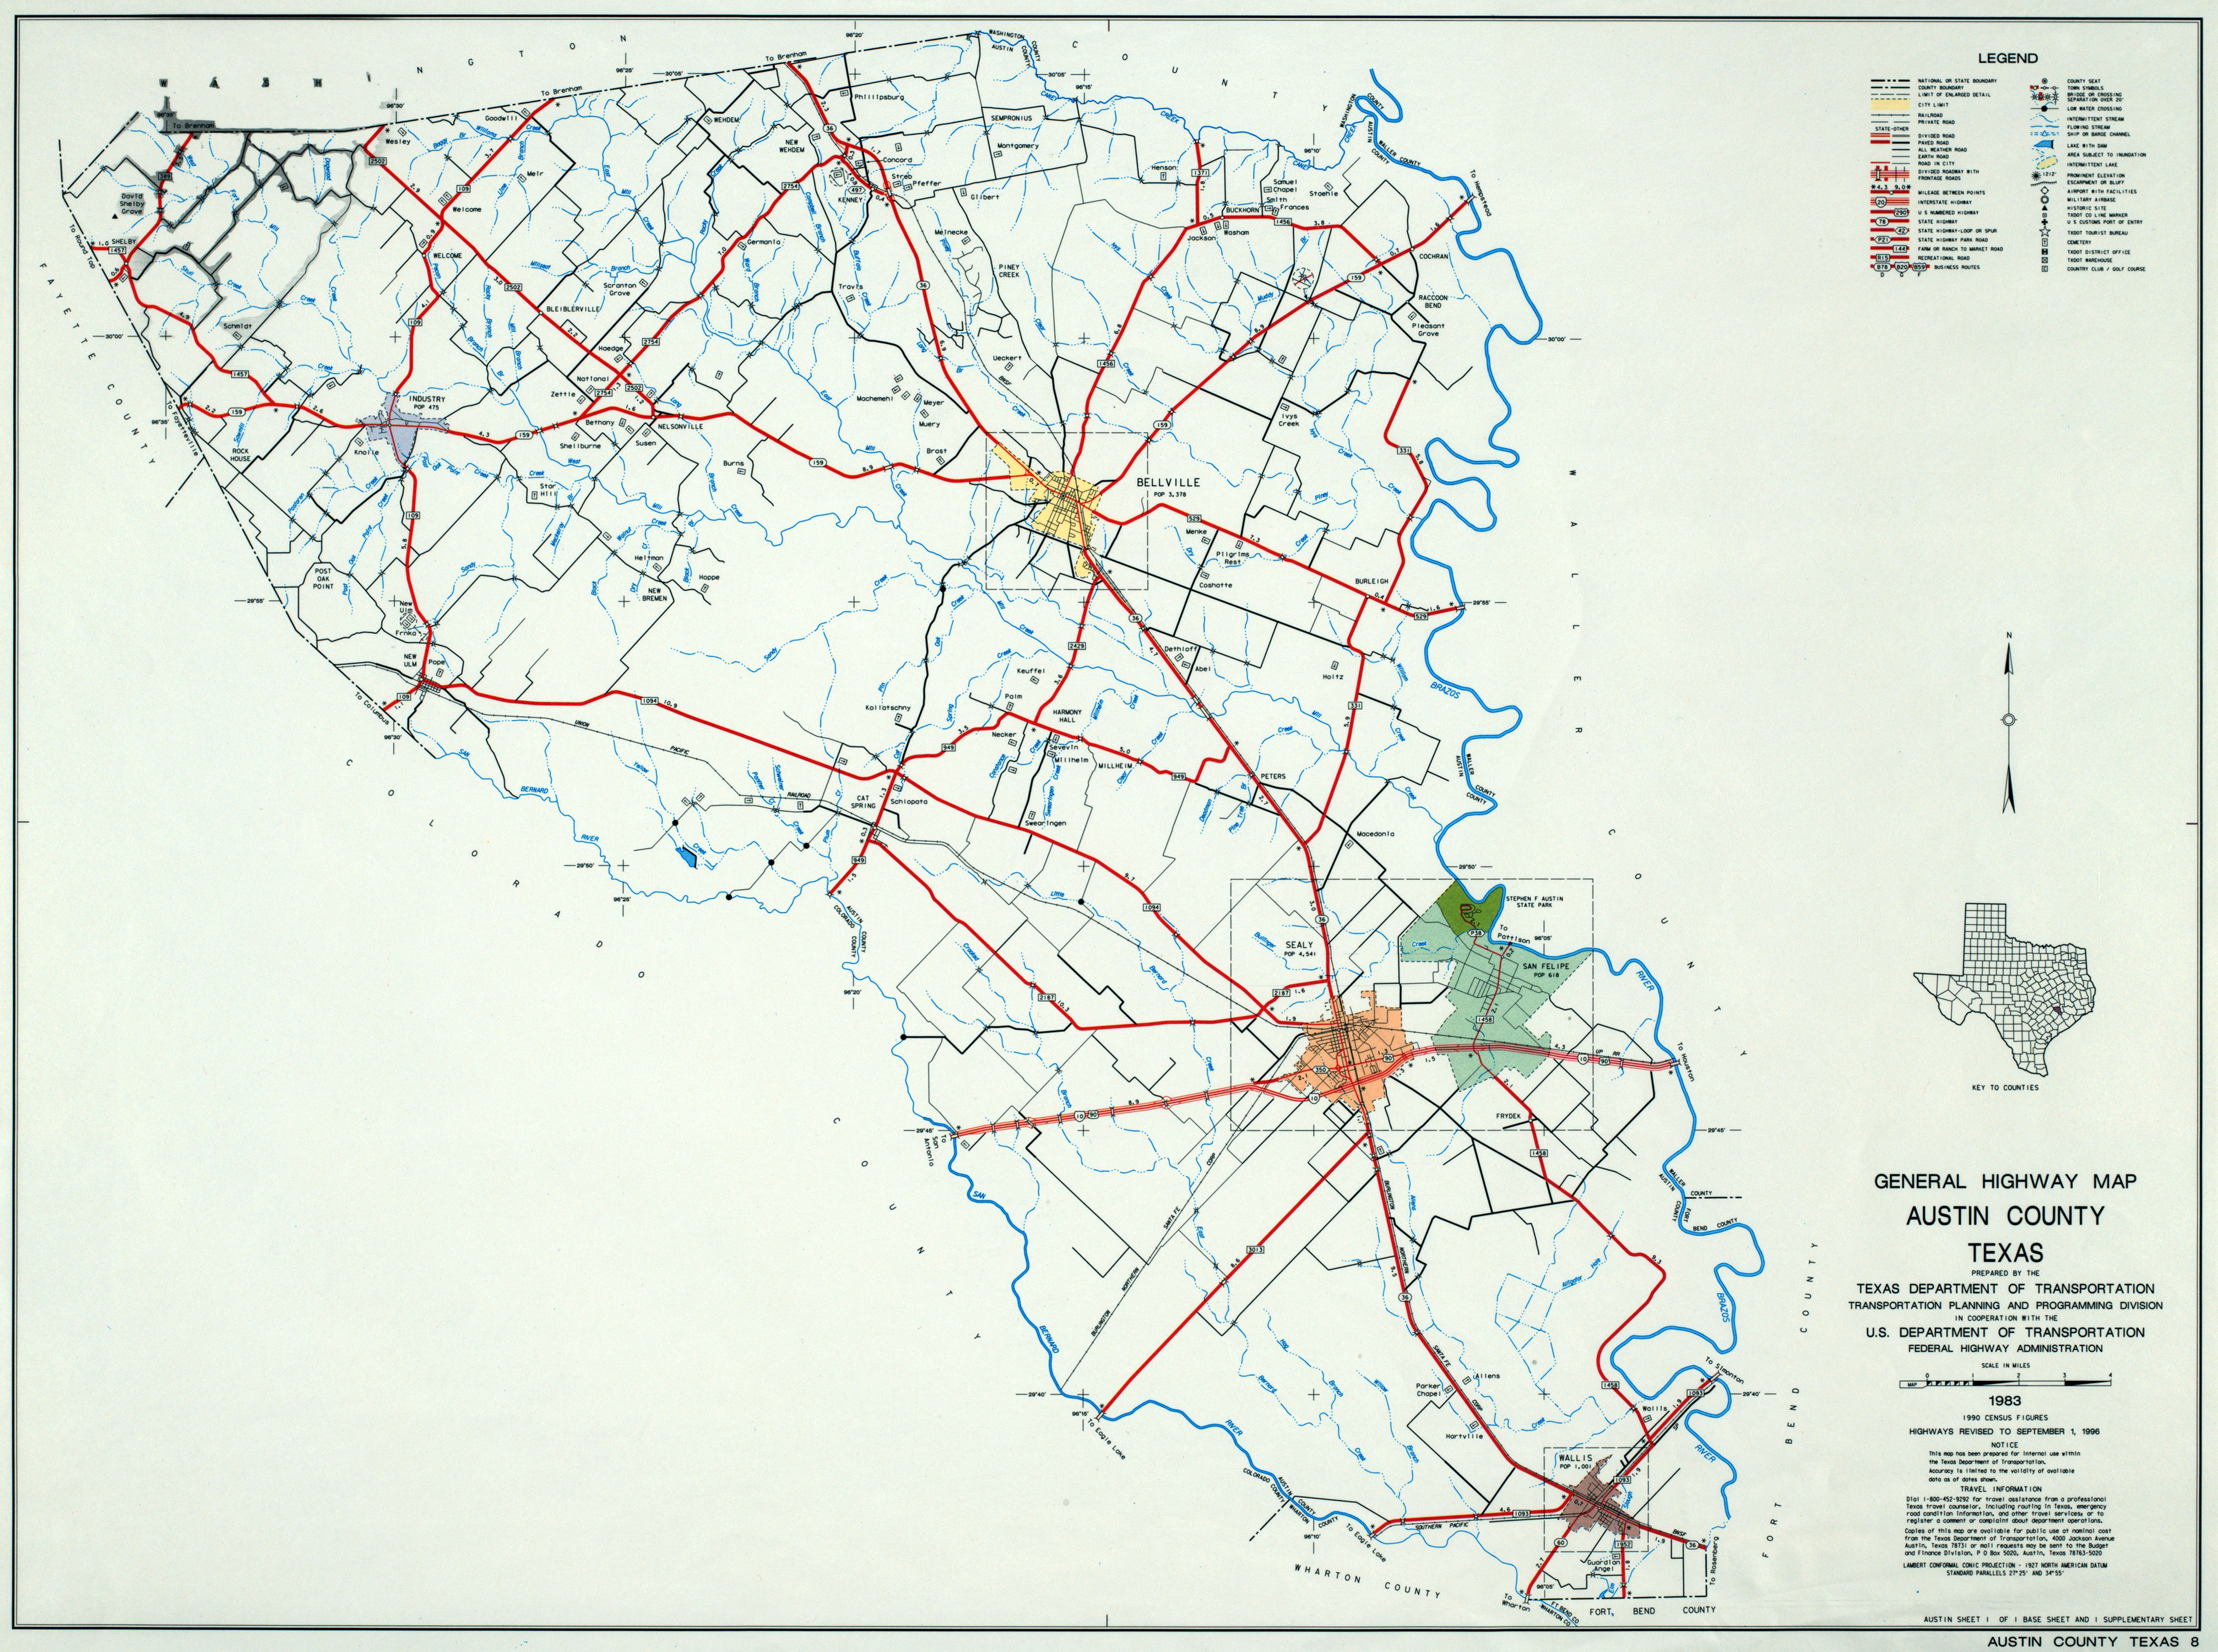 Map Of Counties In Texas.Texas County Highway Maps Browse Perry Castaneda Map Collection